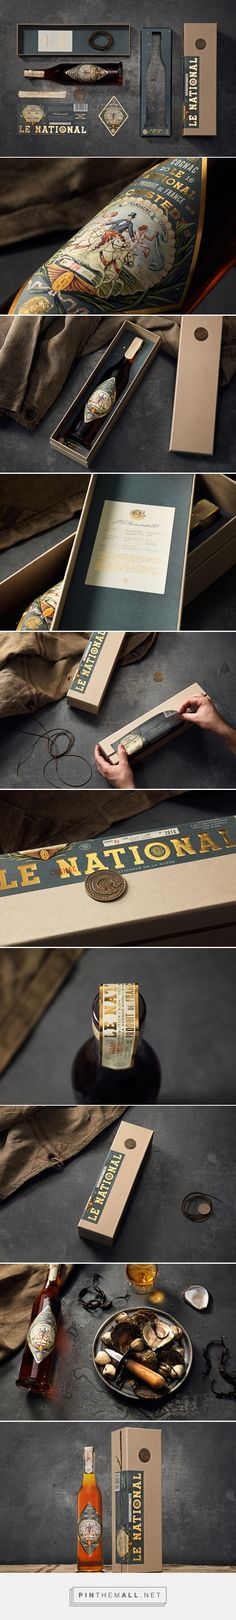 Grönstedts Le National on Behance... - a grouped images picture - Pin Them All